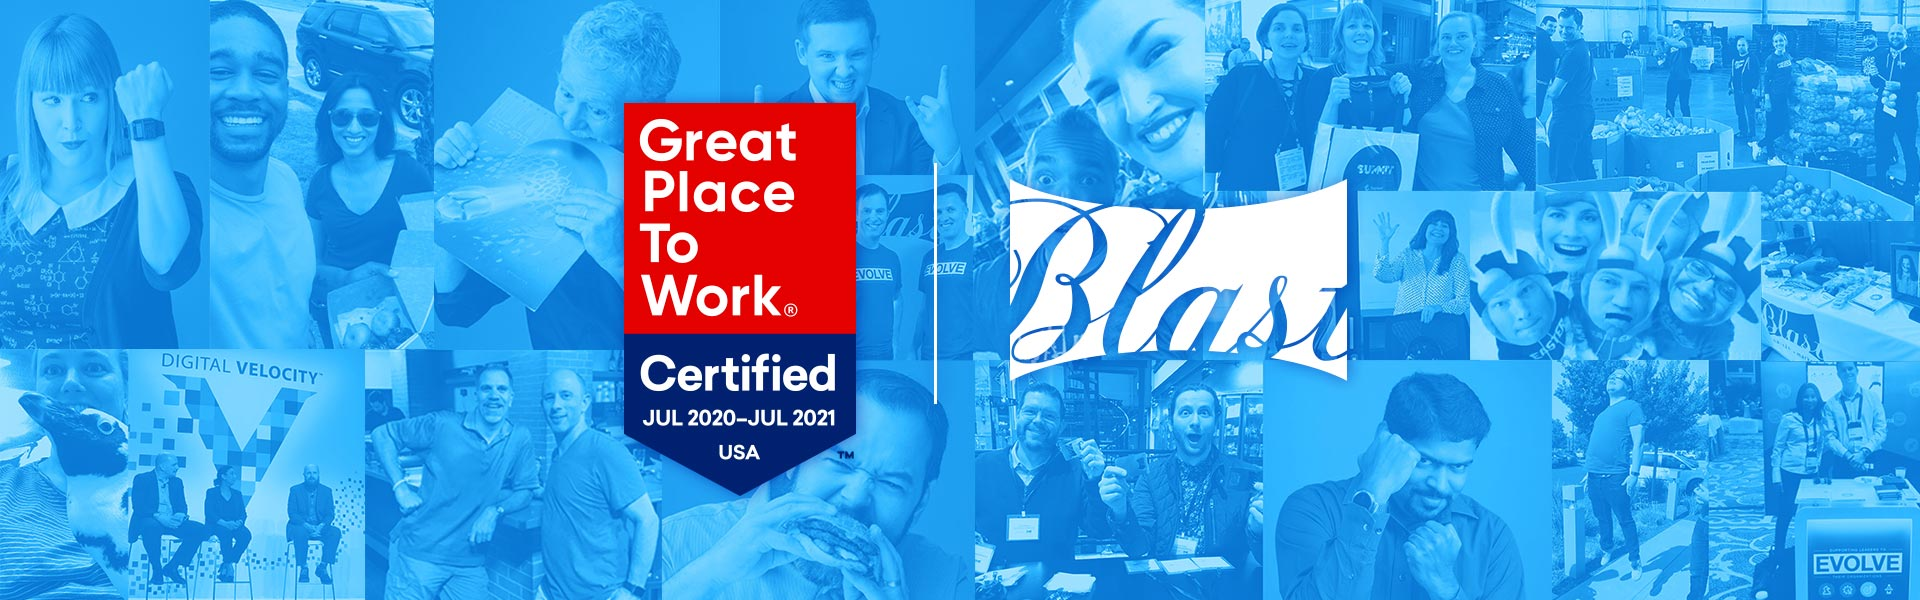 blast great place to work header